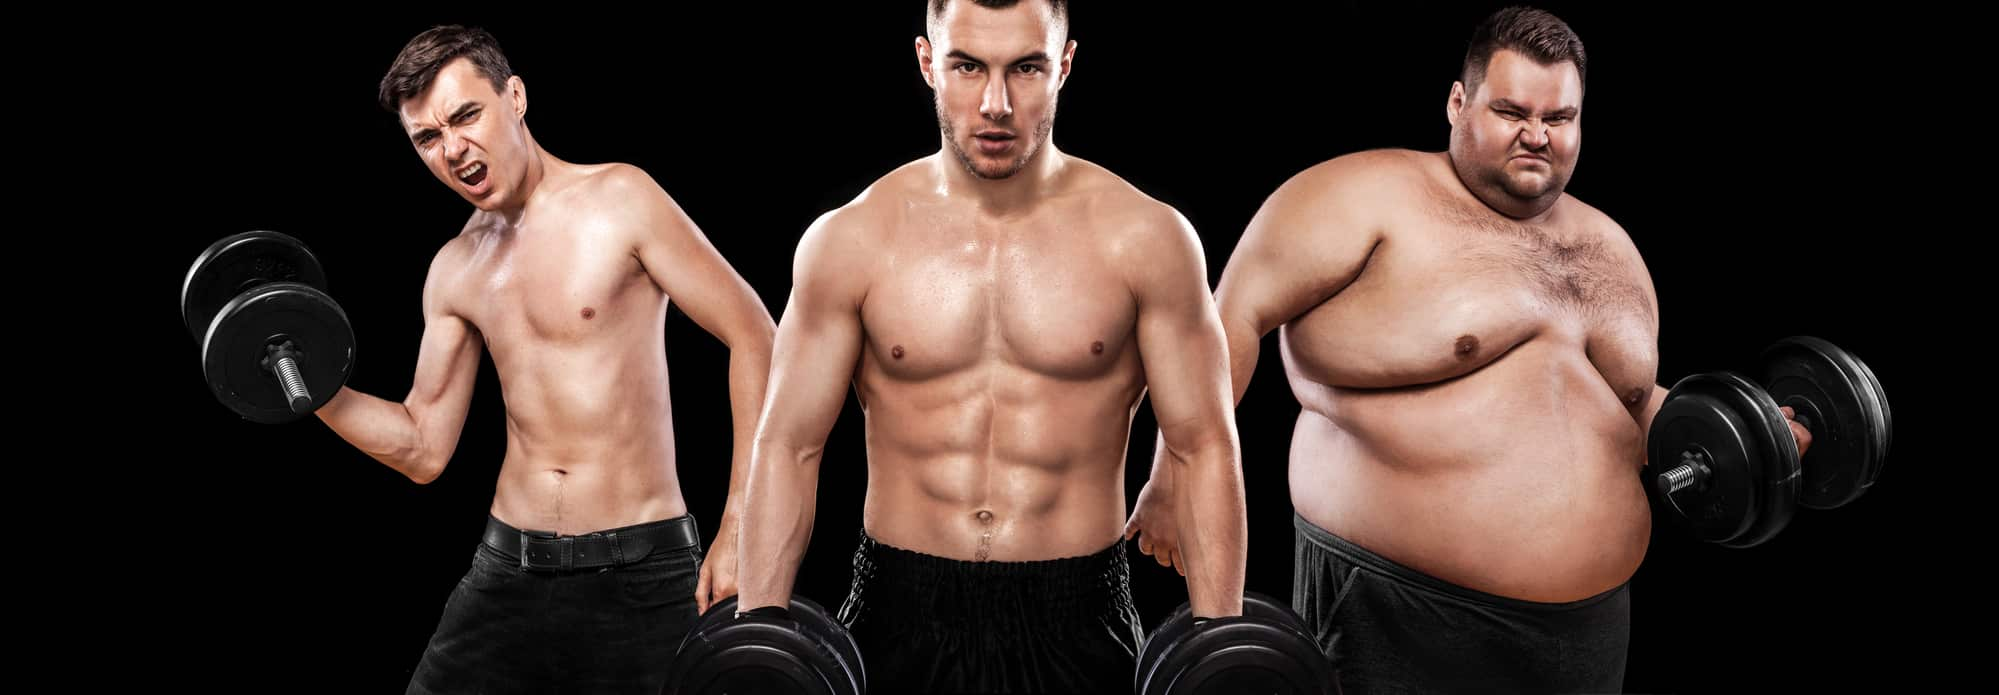 Ectomorph, mesomorph and endomorph . Before and after result. Sport concept. Group of three young sports men - fitness models holds the dumbbell on black background. Fat, fit and athletic men.